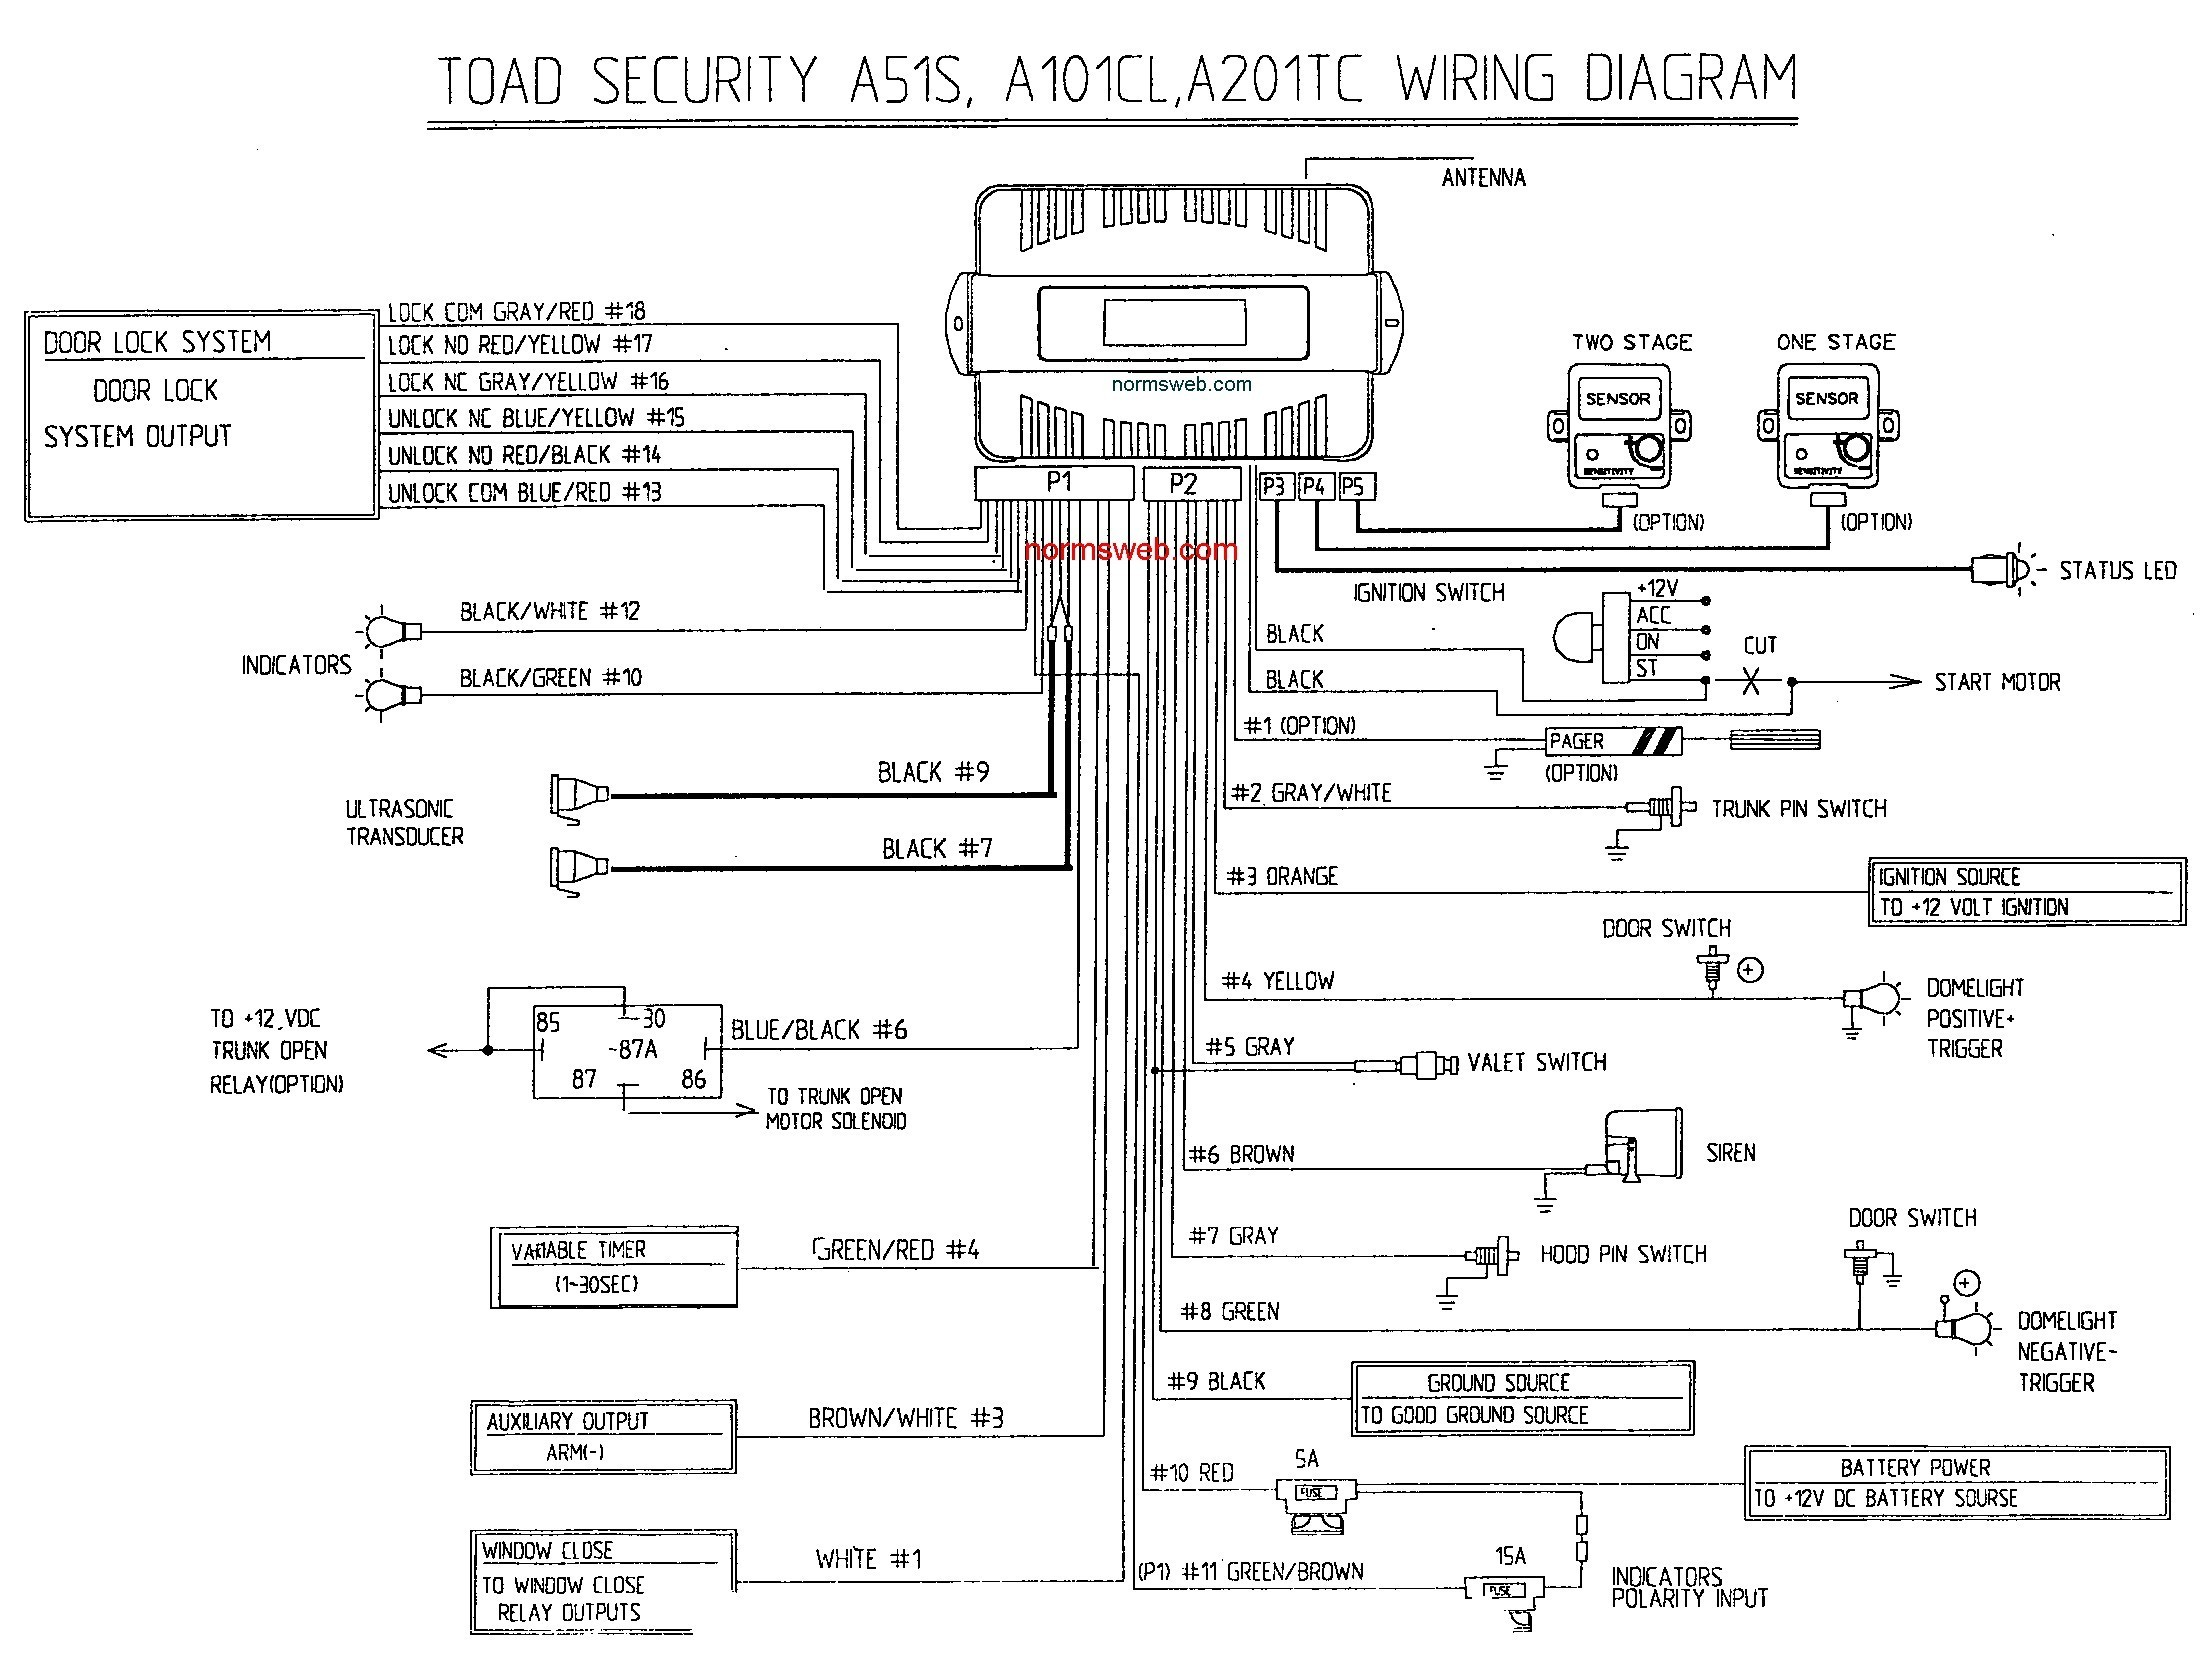 Hawk Car Alarm Wiring Diagram Motorcycle Alarm Wiring Diagram Trusted Wiring Diagrams • Of Hawk Car Alarm Wiring Diagram